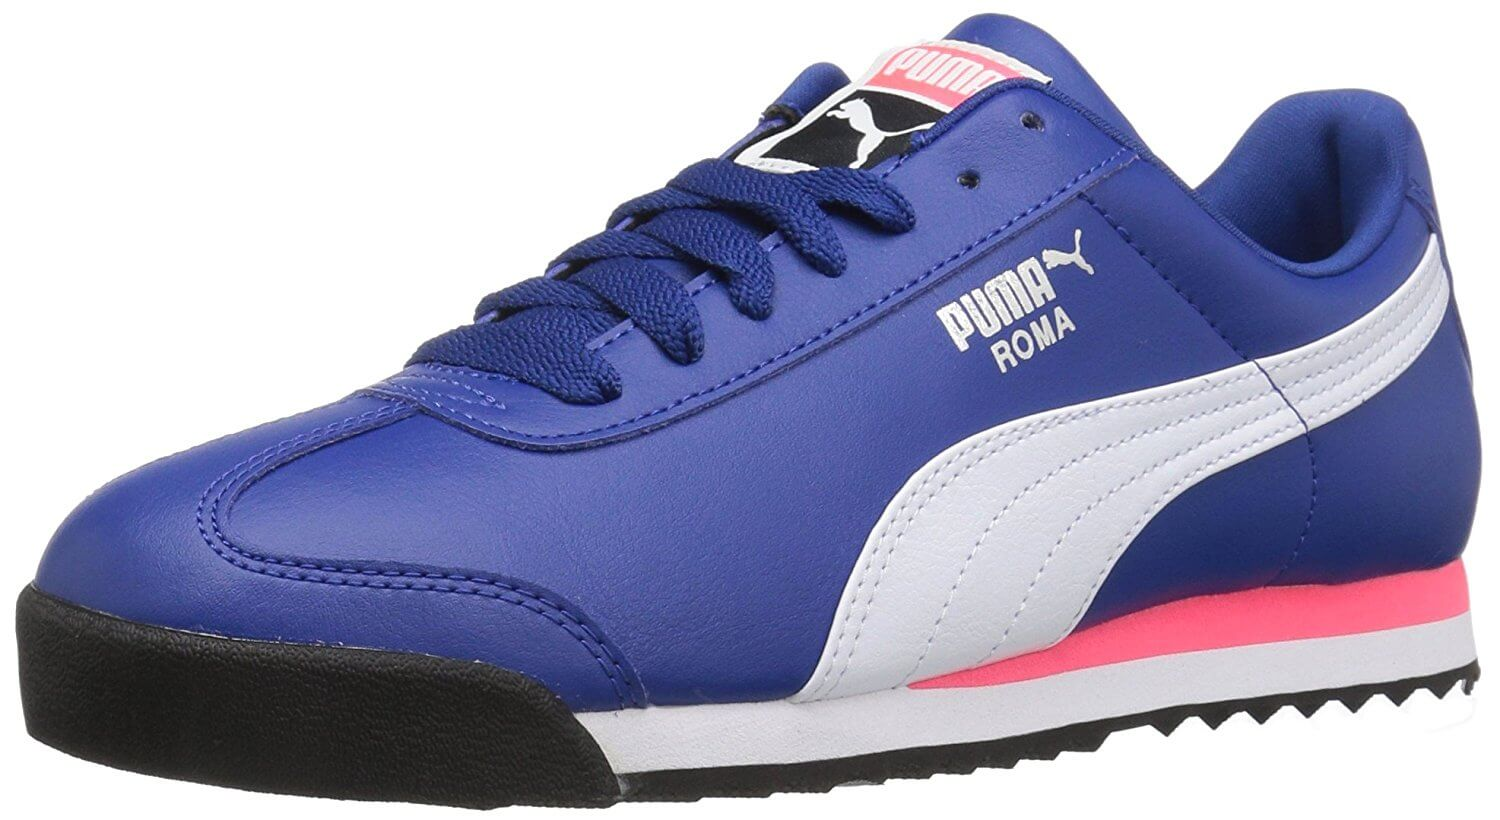 4fc39116df Puma Roma Fully Reviewed & Compared